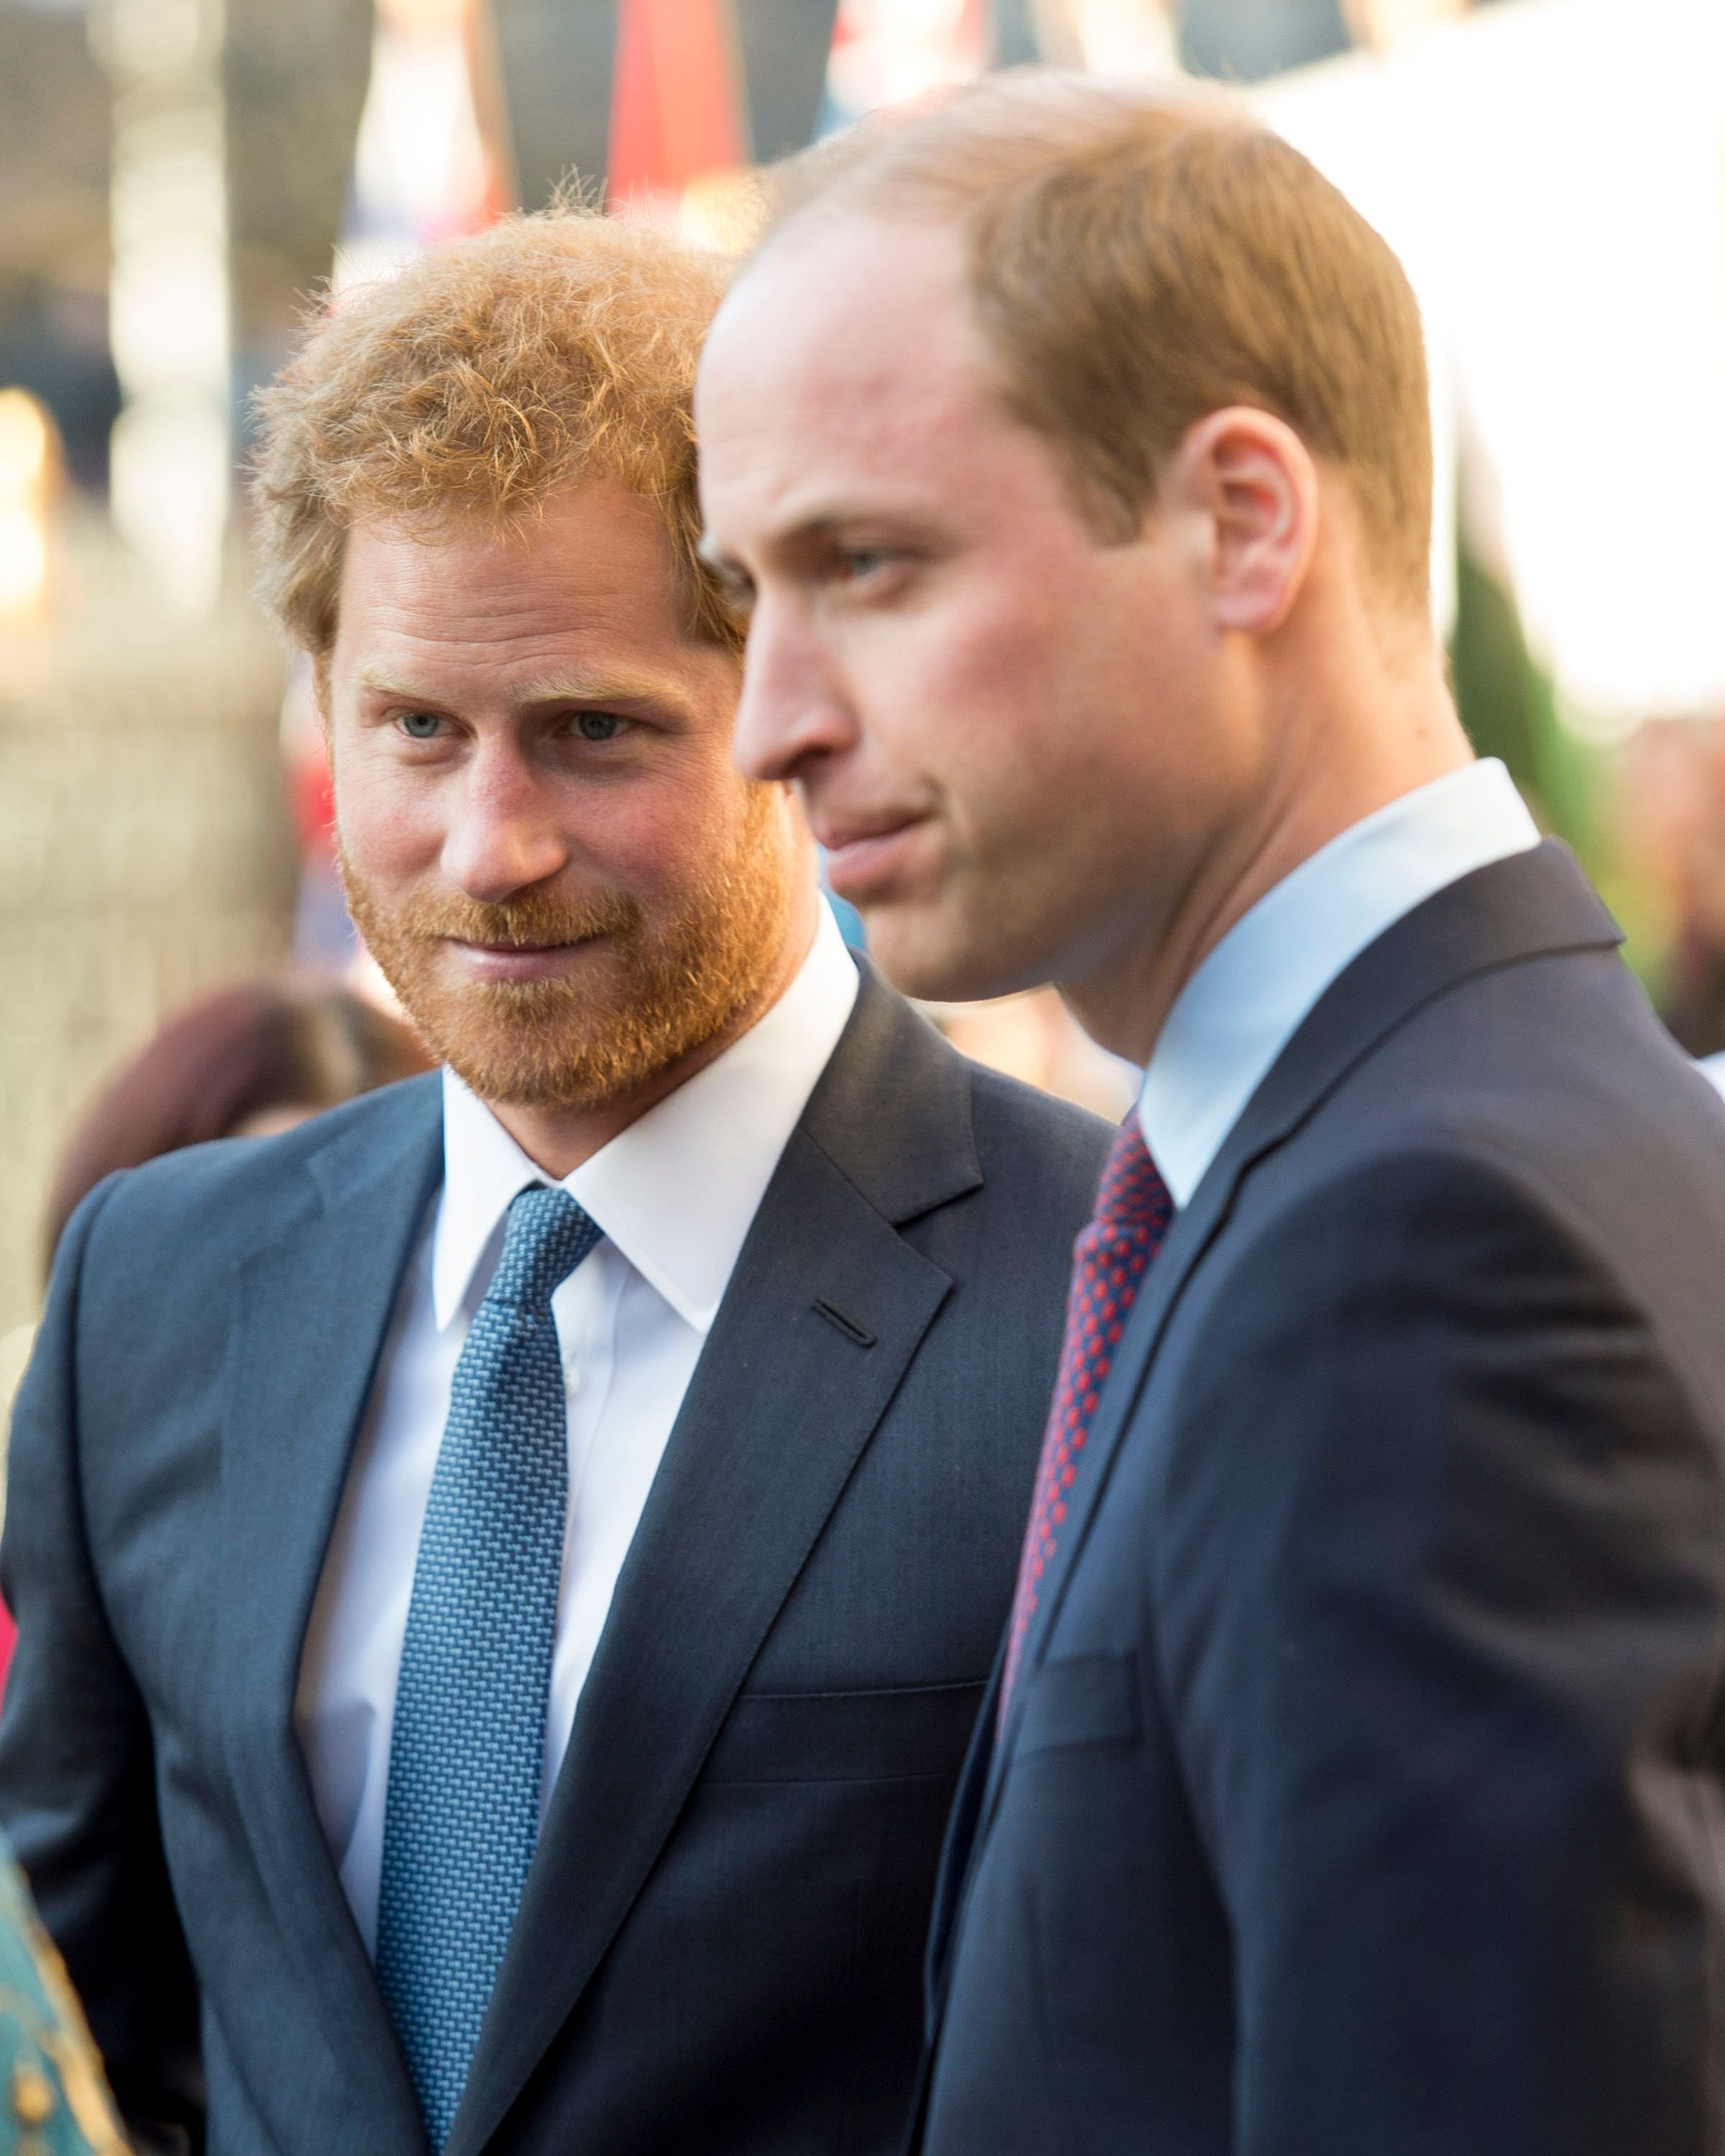 Prince Harry and Prince Williamatthe Commonwealth Observance Day Service on March 14, 2016, in London, United Kingdom | Photo:Mark Cuthbert/UK Press/Getty Images